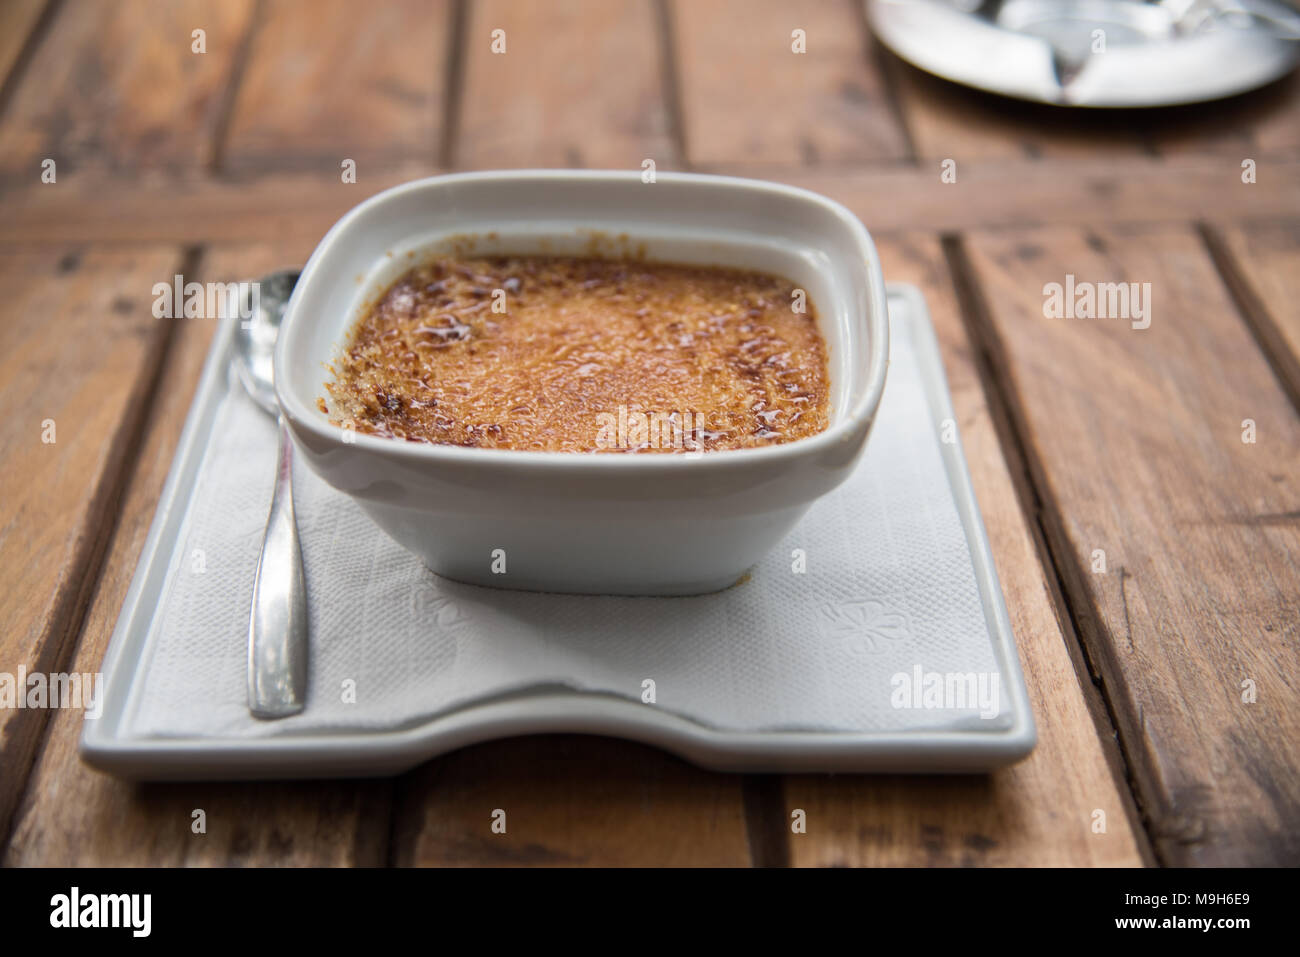 A white bowl holding brown baked flan dessert sits upon a brown wooden picnic table. - Stock Image